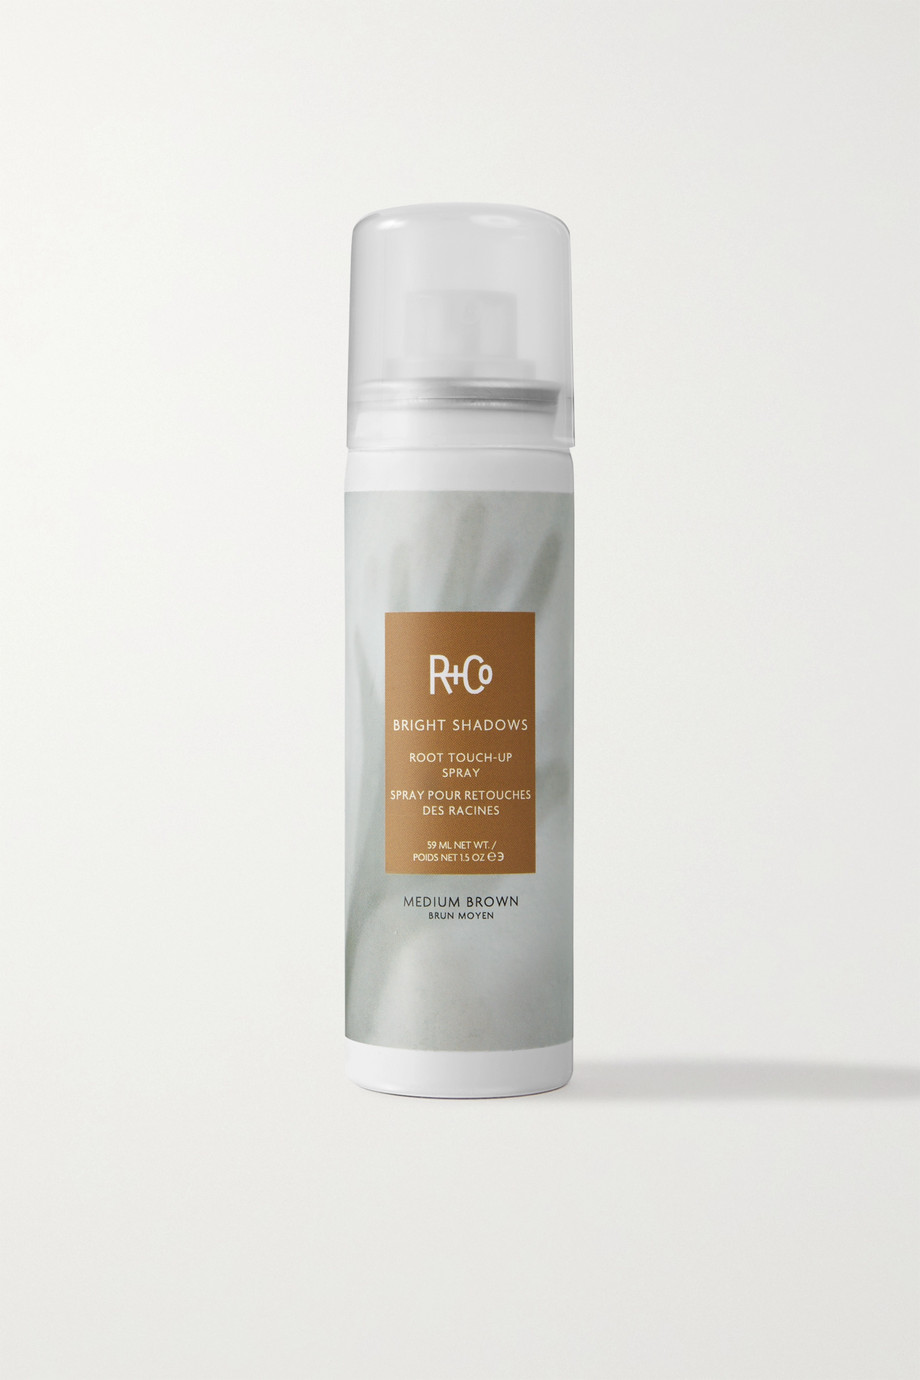 R+Co Bright Shadows Root Touch-Up Spray - Medium Brown, 59ml